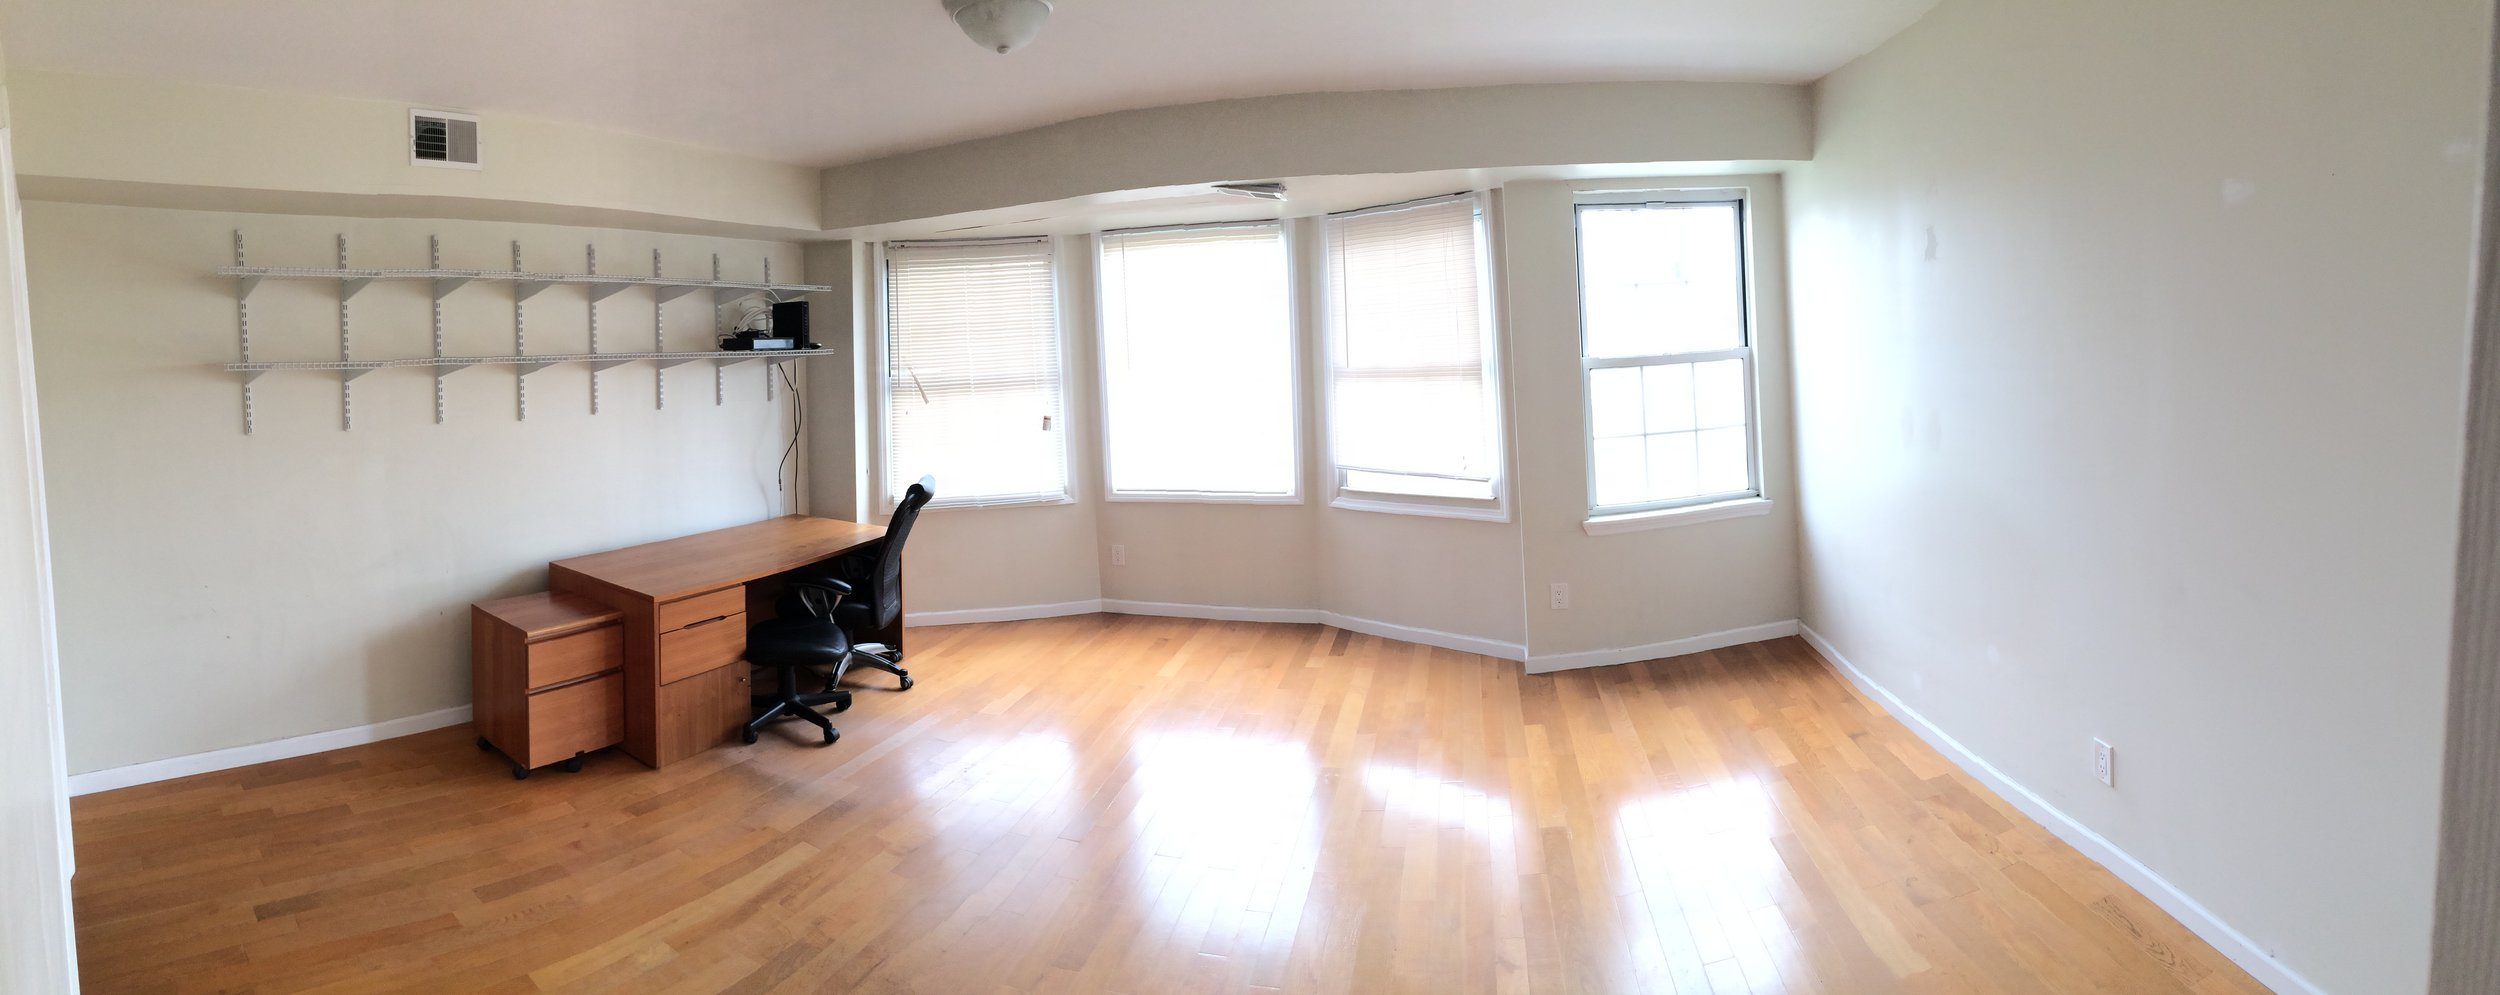 Where it all got started - Patrick's first apartment bedroom. Amazing to think how far 20/20 Visual Media has come.